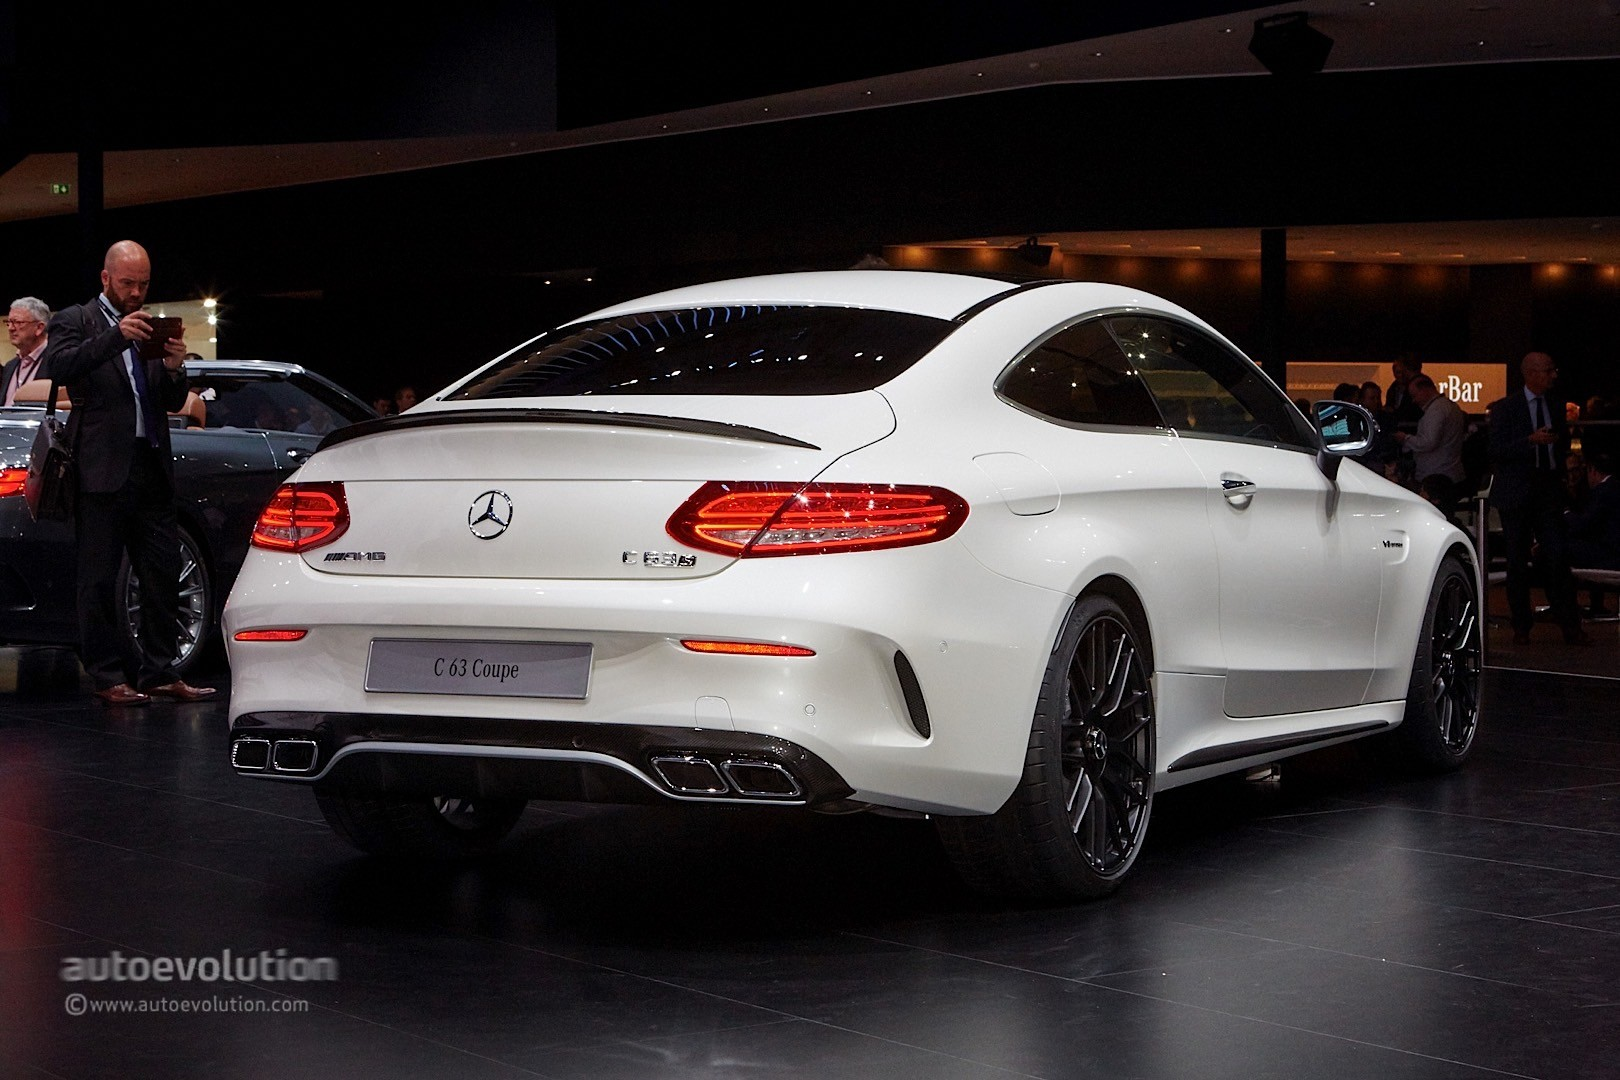 Mercedes benz c class coupe and c63 coupe bring sloped for Mercedes benz c coupe